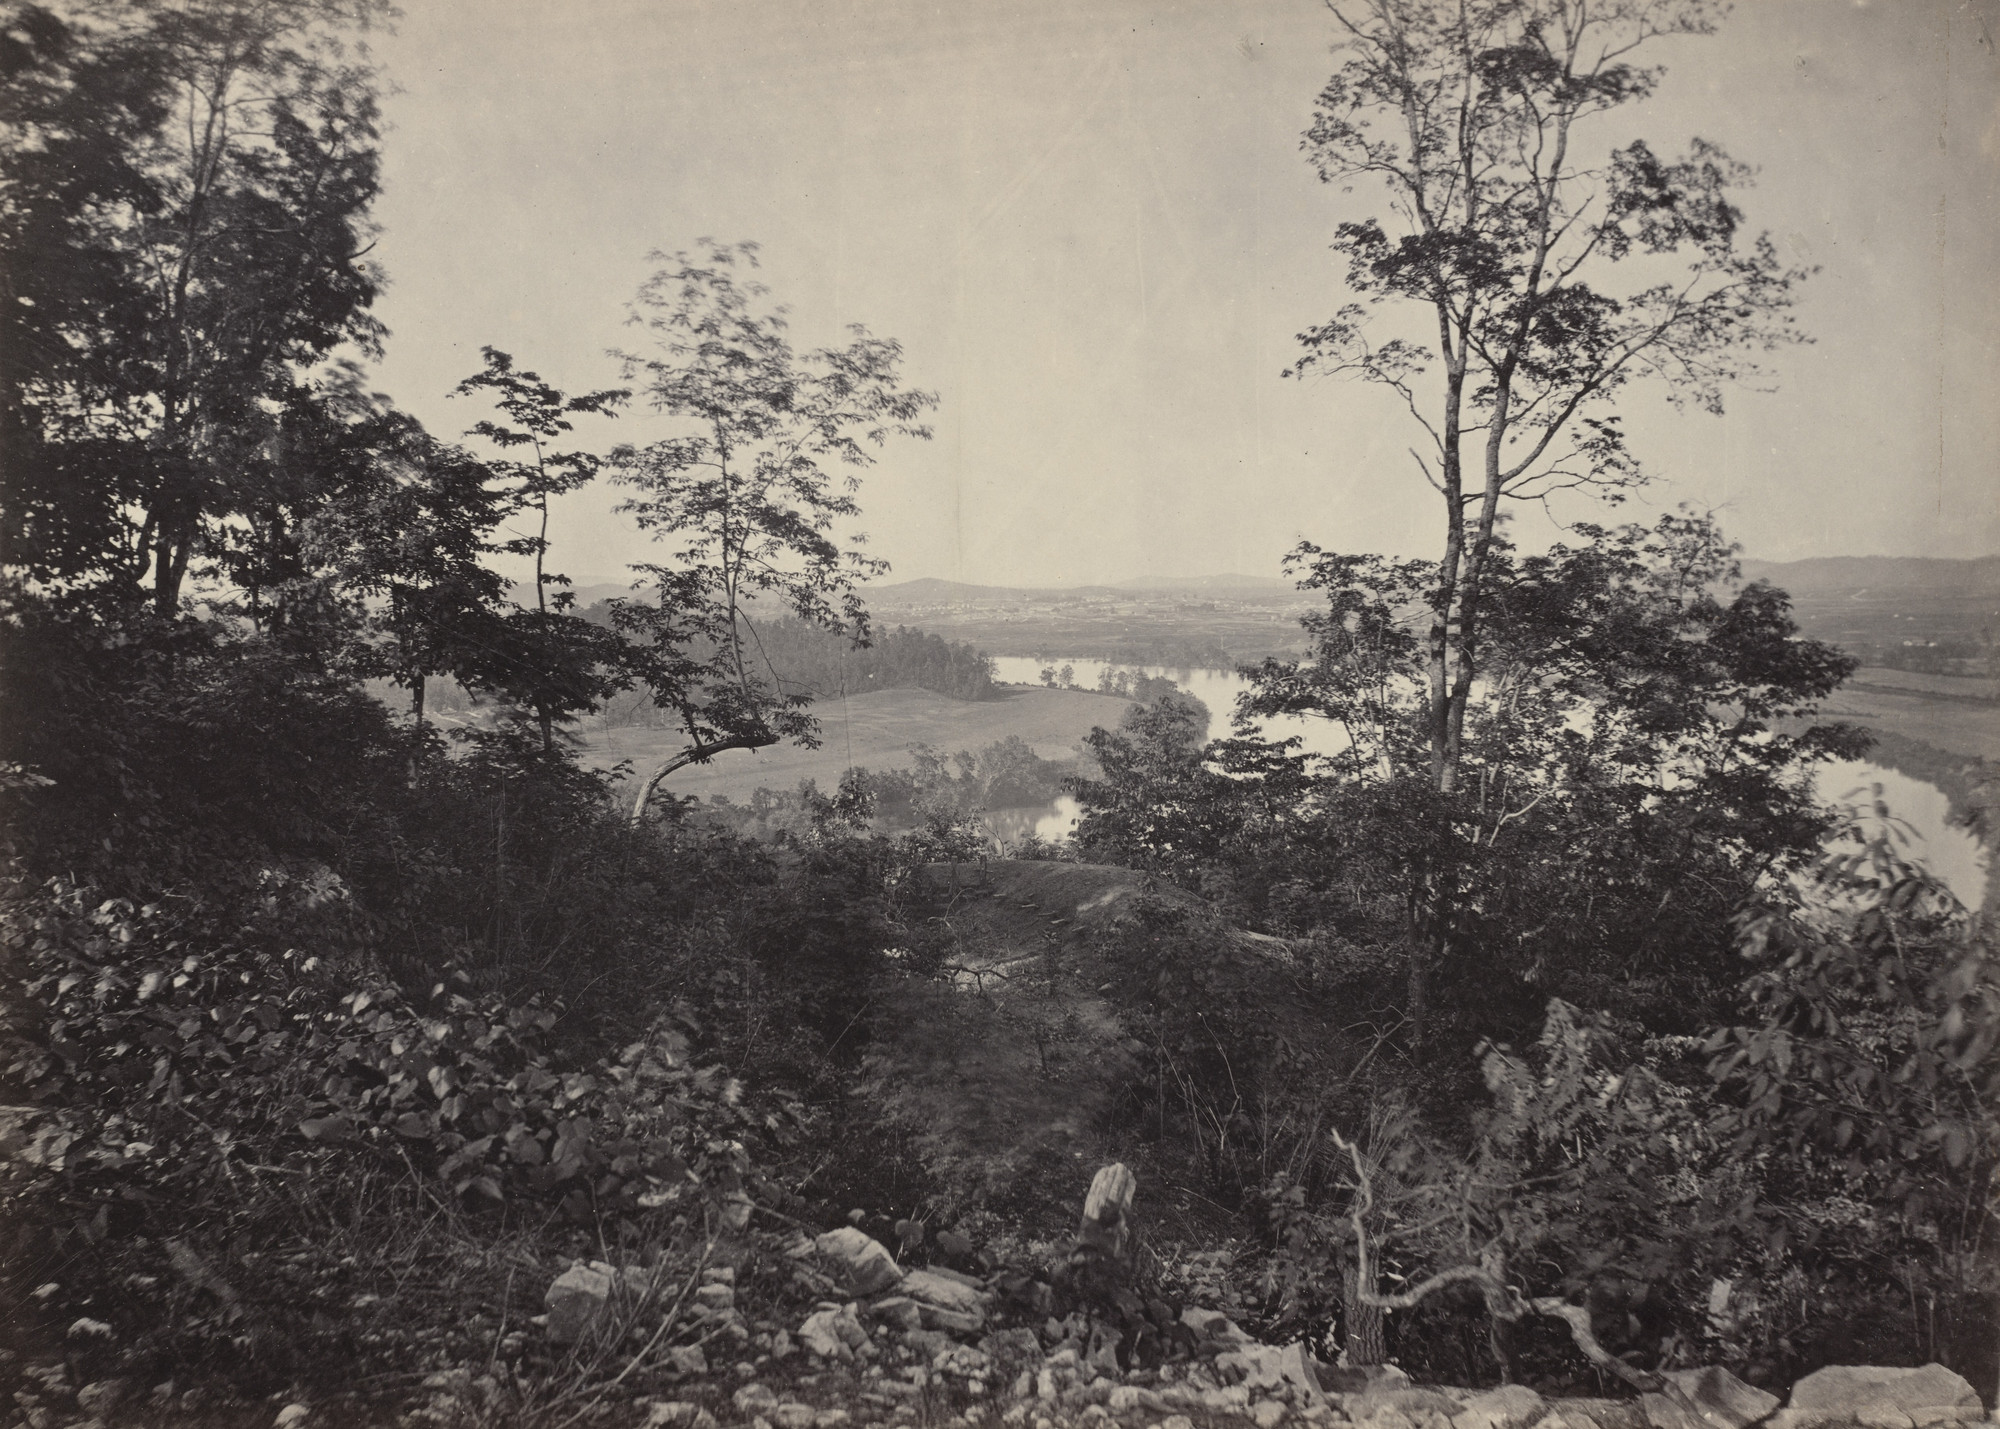 George Barnard. Chattanooga Valley, from Lookout Mountain from the album Photographic Views of Sherman's Campaign. 1864-65